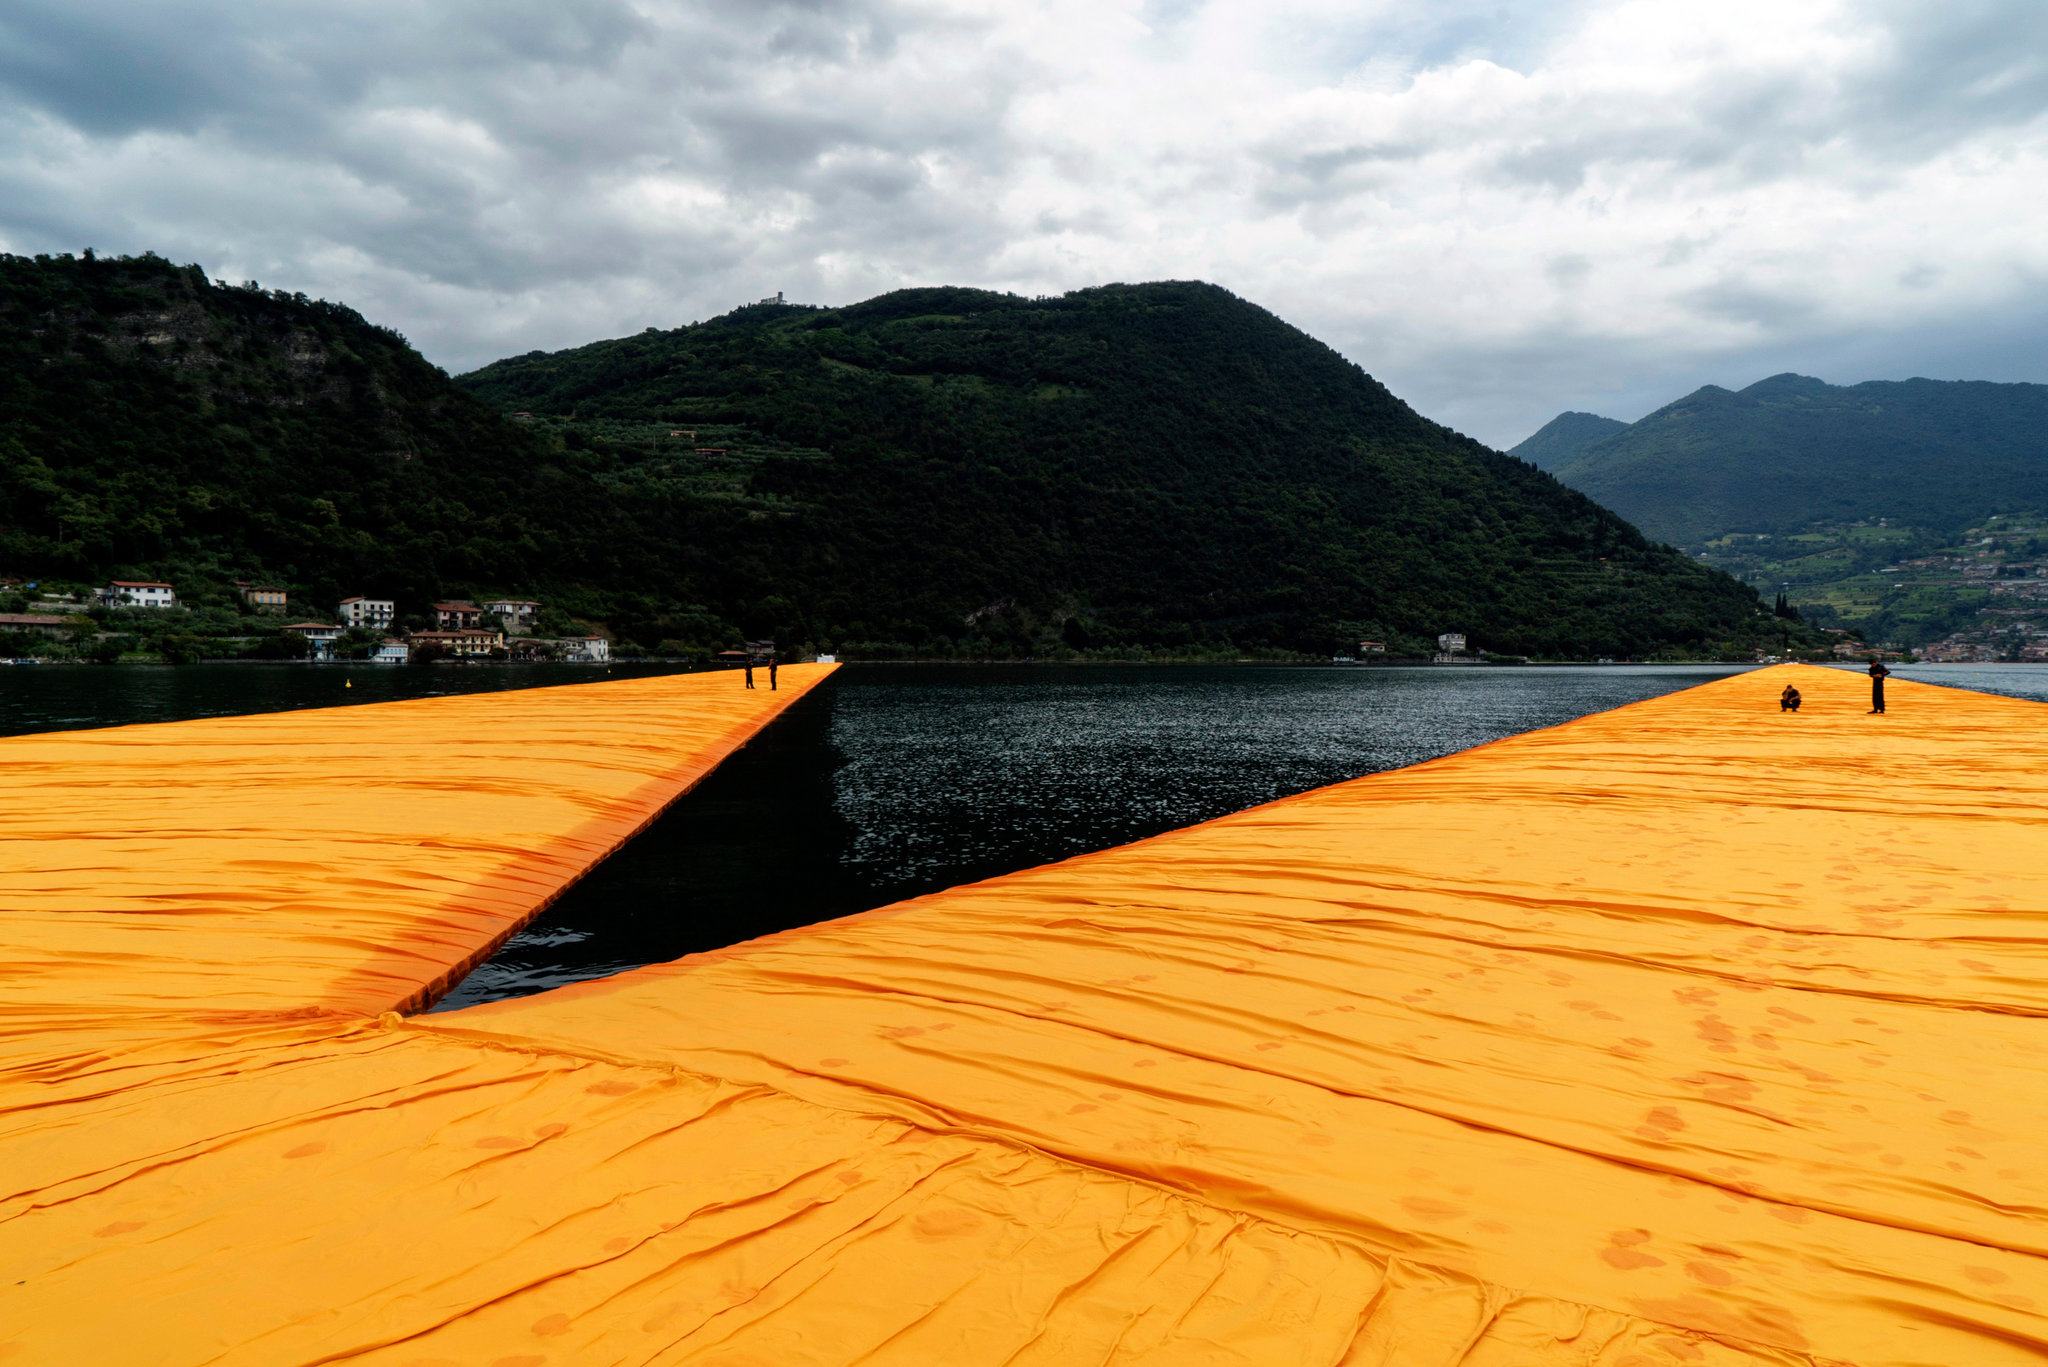 17christo-angle-superJumbo